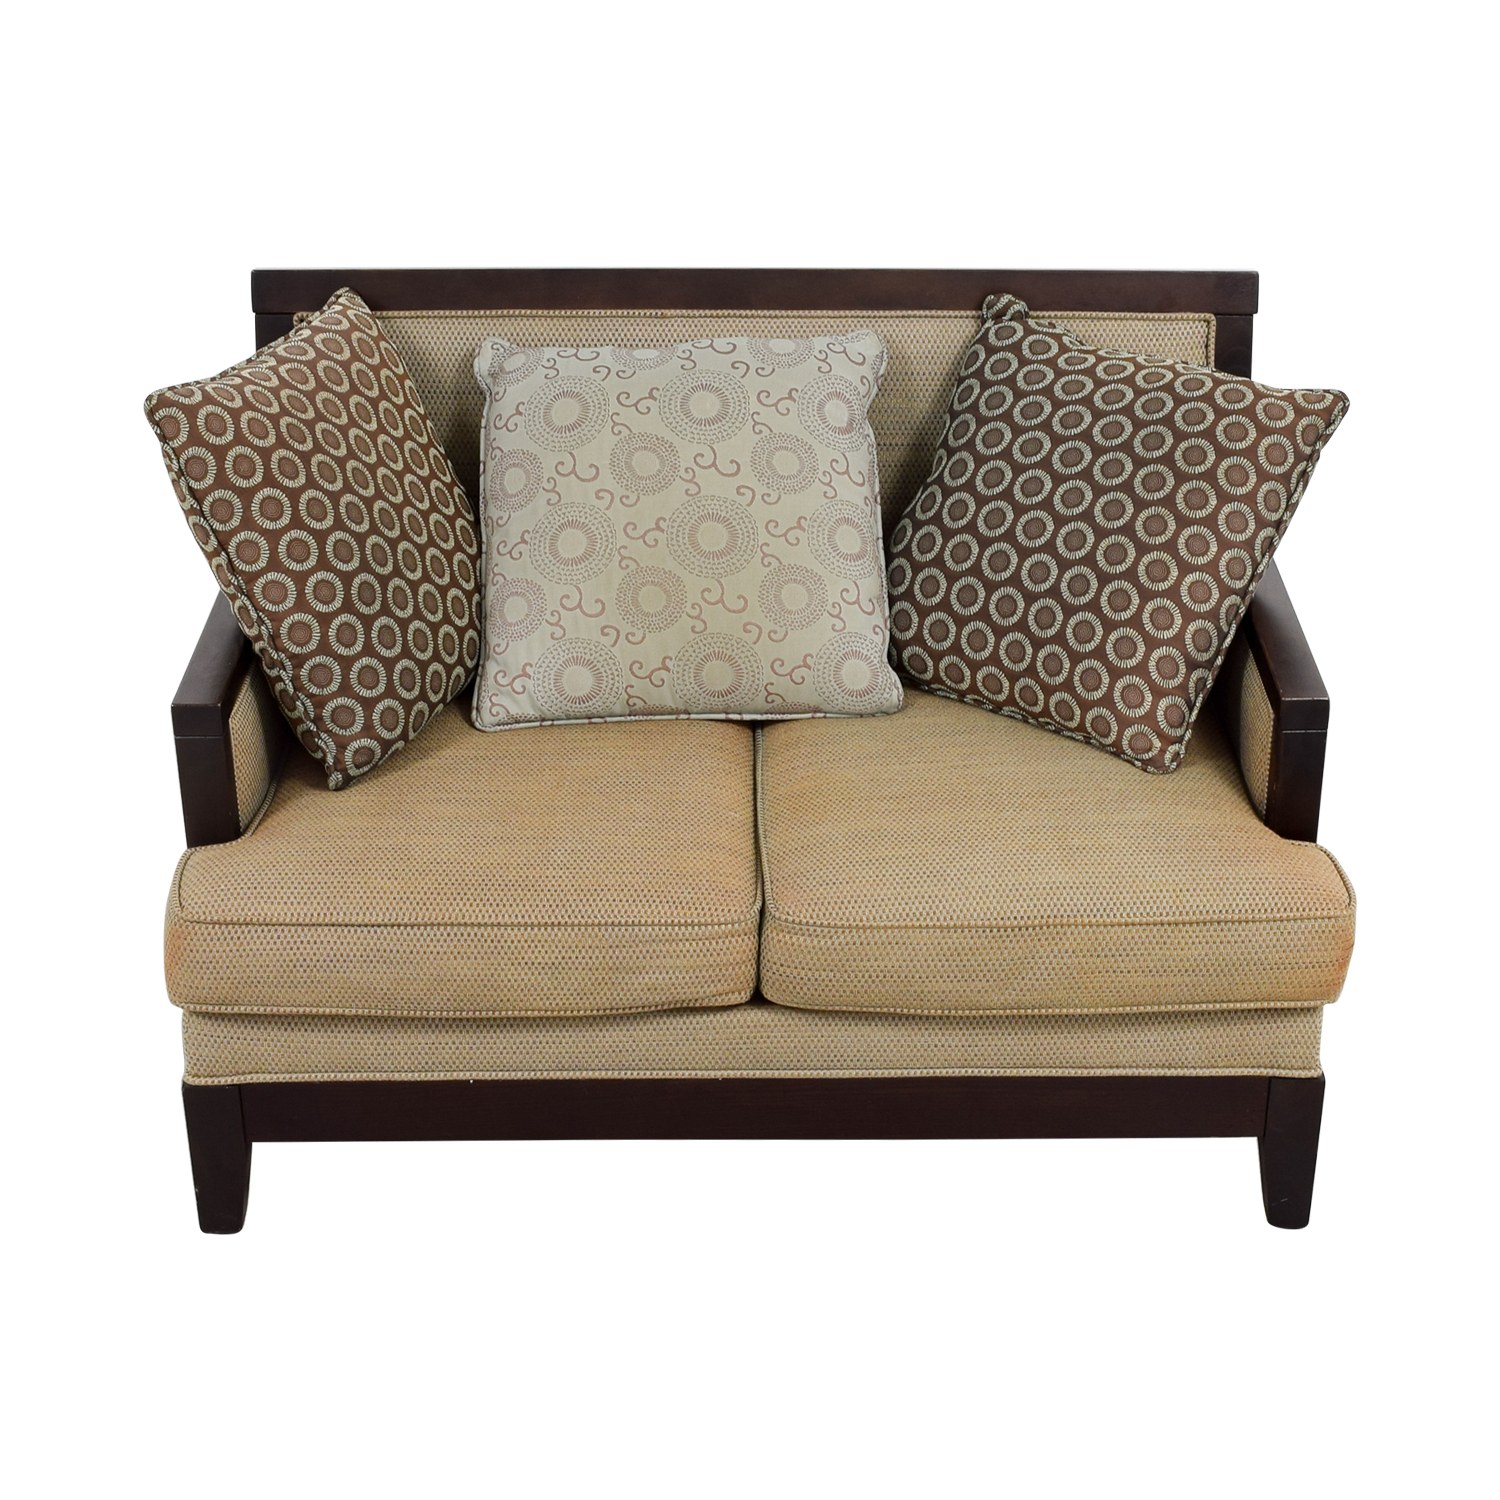 of cherry radar inspirations chenille legs plastic mocha with wood set image frame sofa loveseat